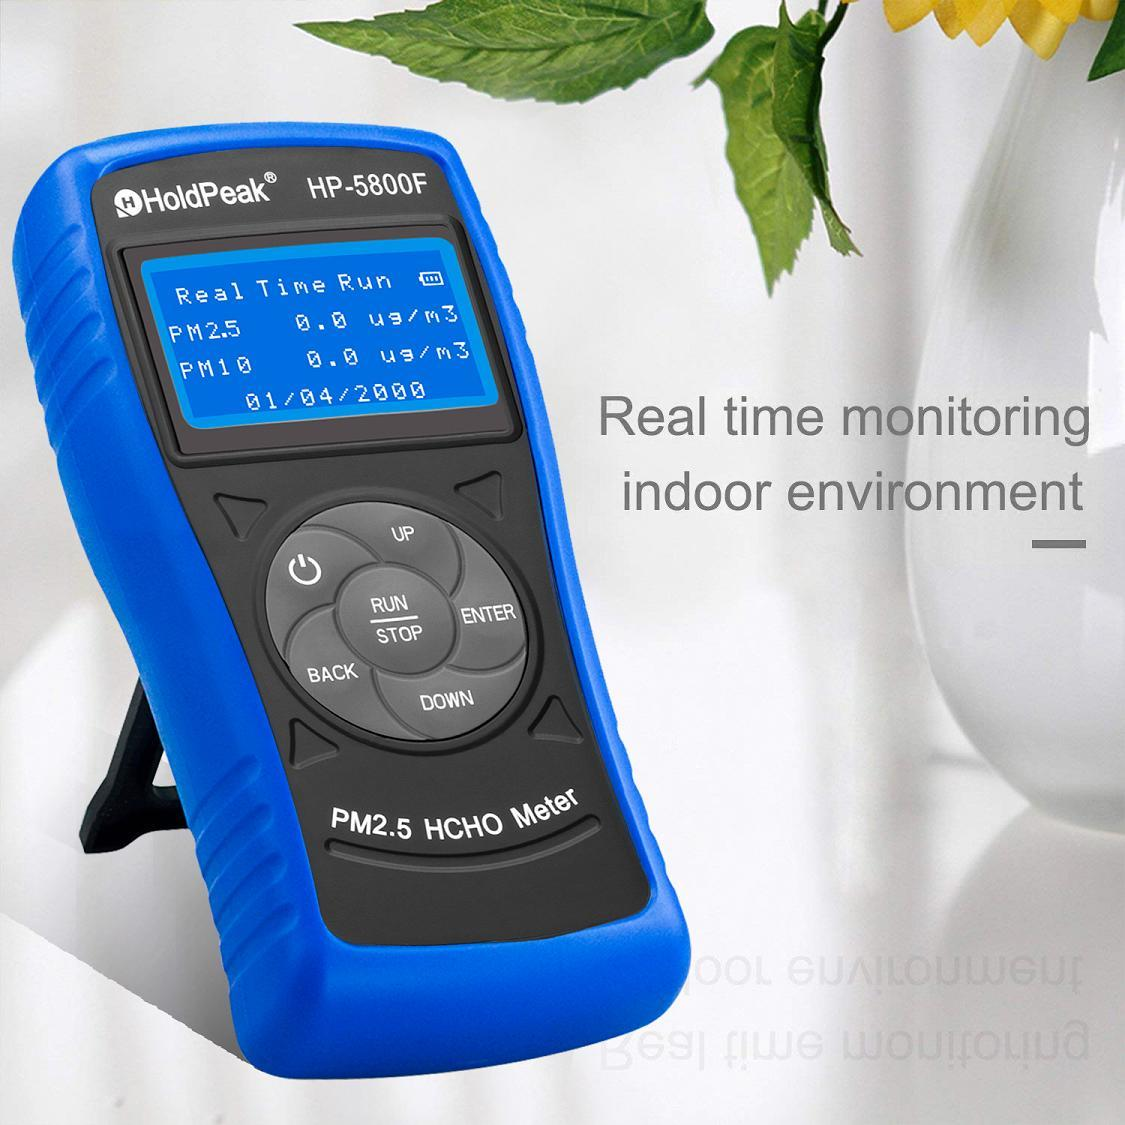 HoldPeak high reputation digital detector grab now for industry